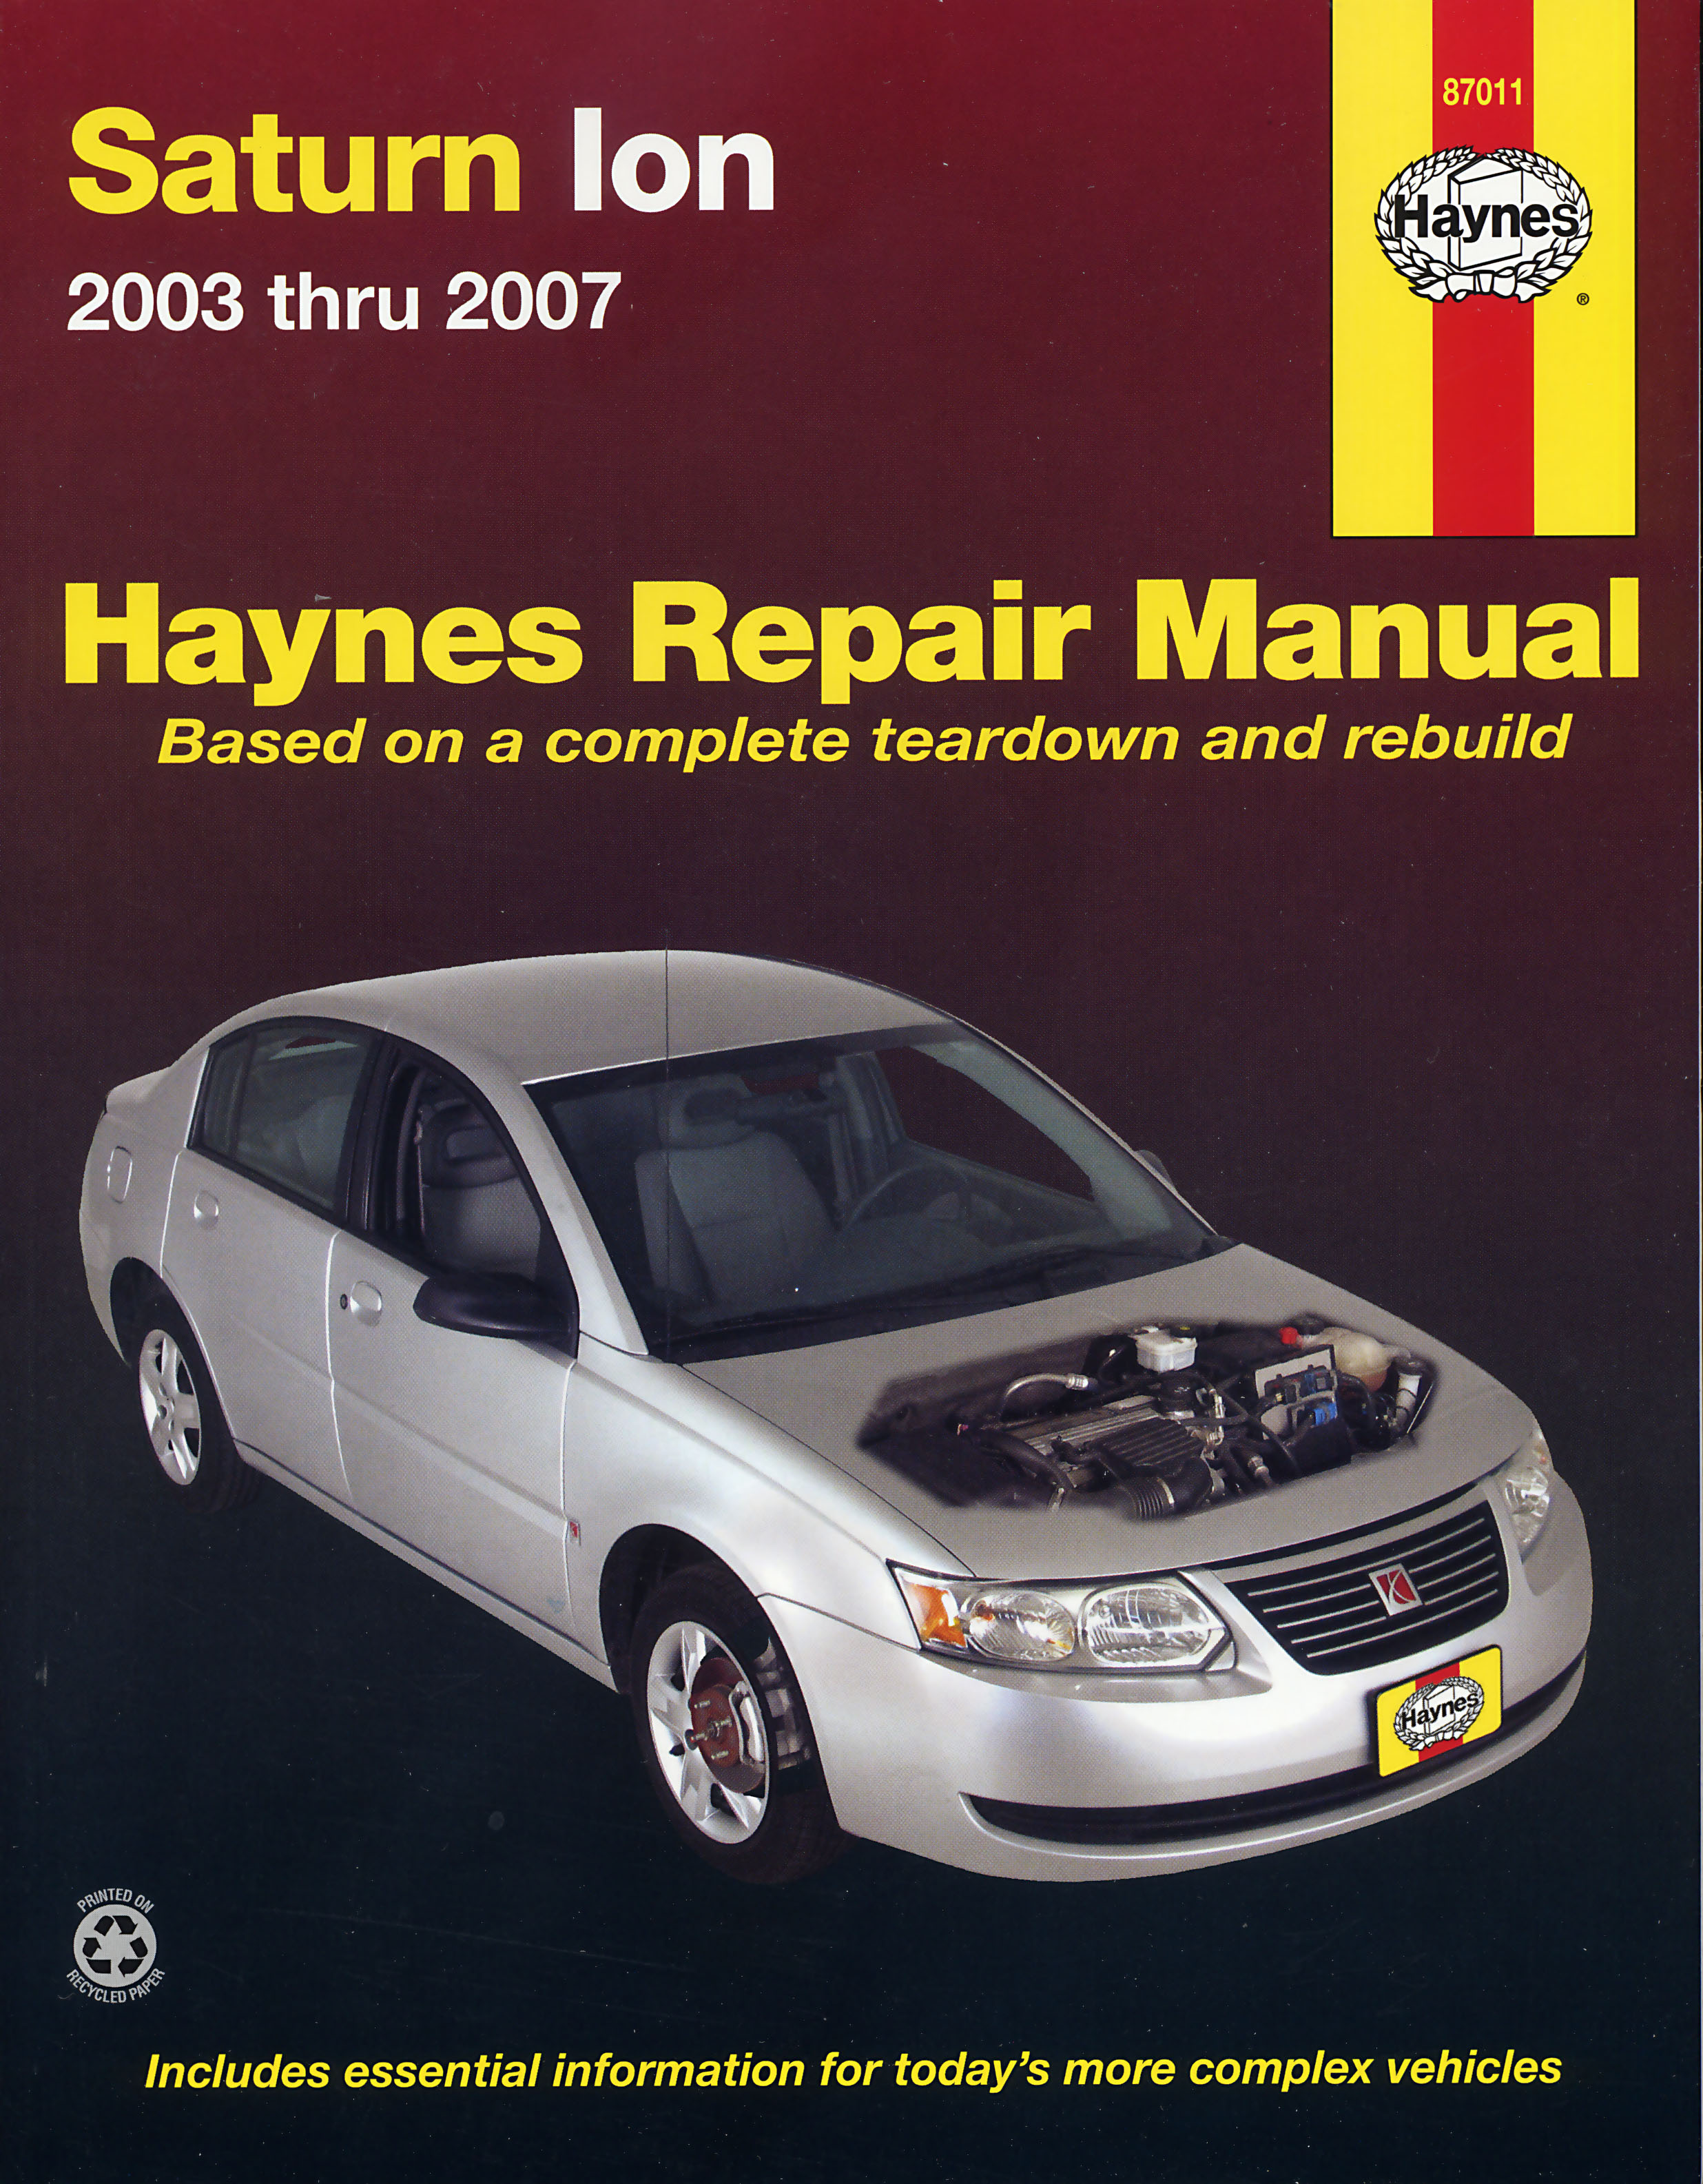 ... Saturn Ion (03-07) Haynes Repair Manual. Enlarge ...